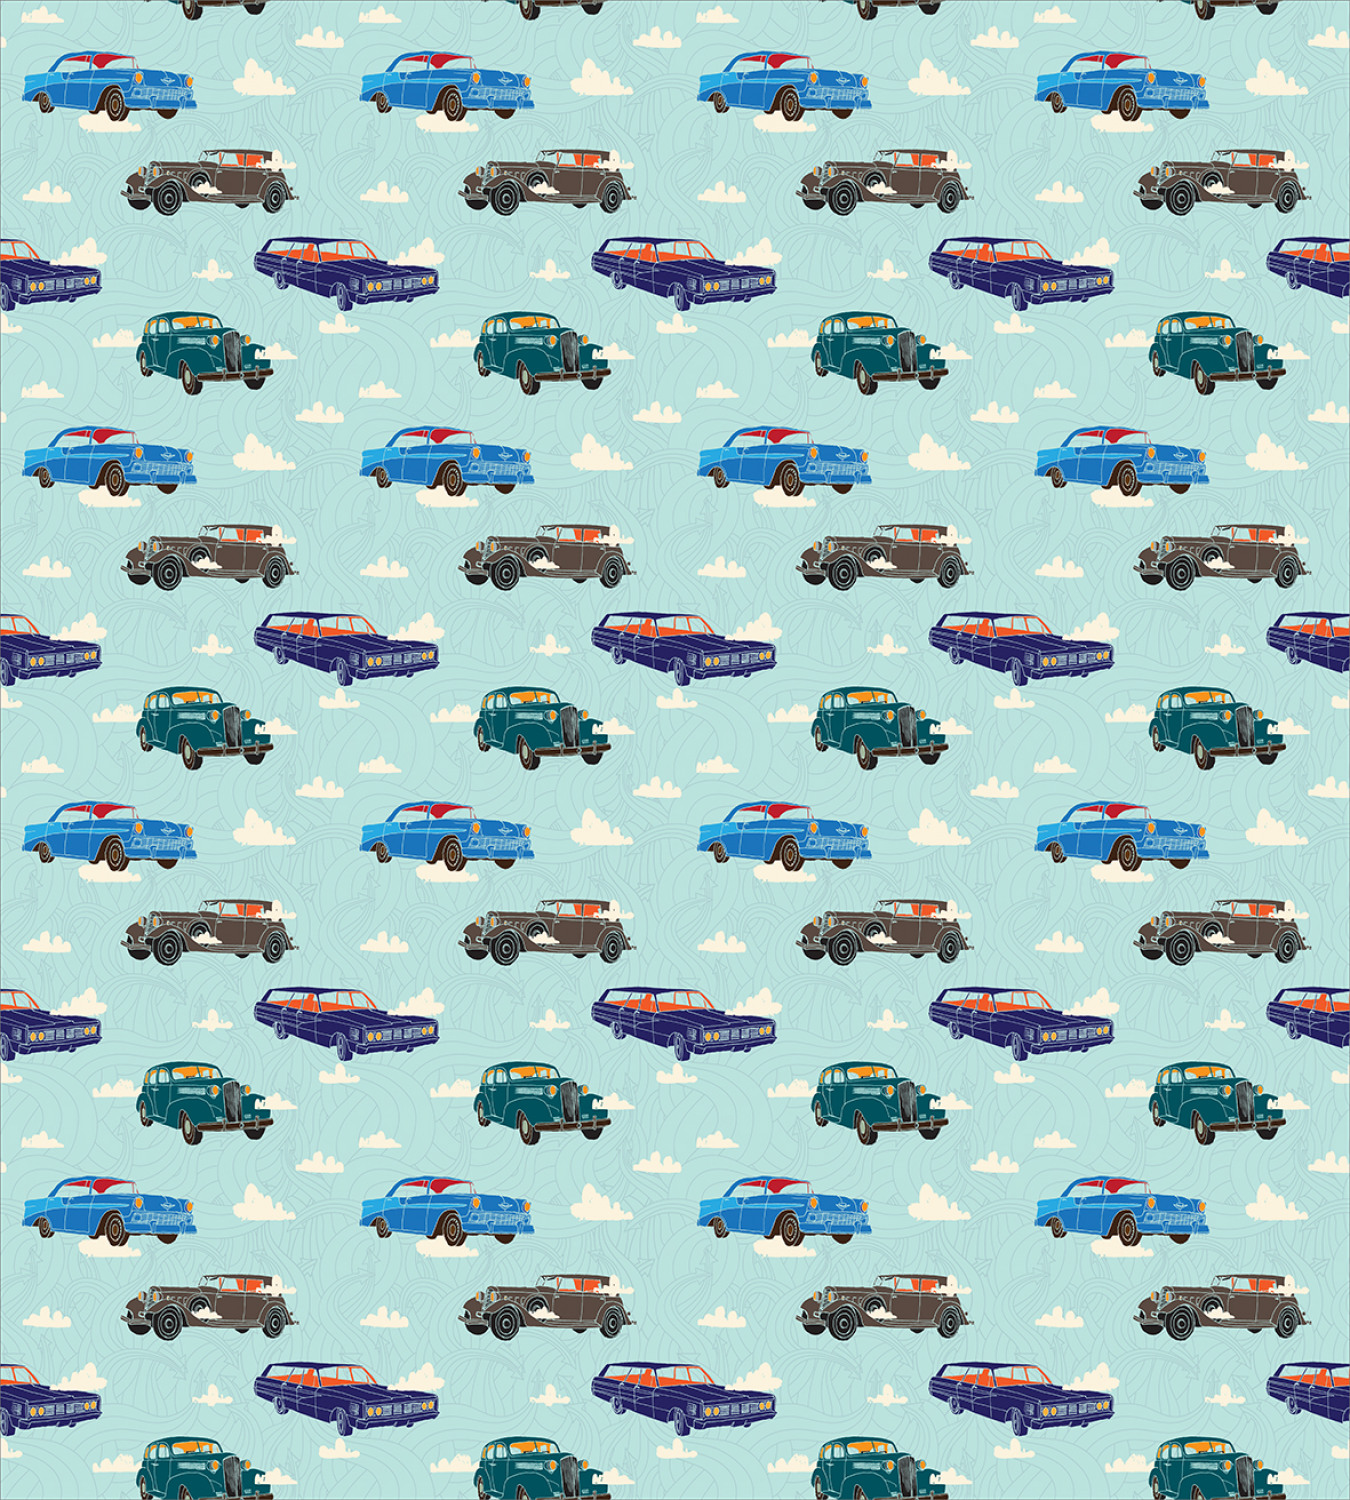 Colorful-Cars-Duvet-Cover-Set-Twin-Queen-King-Sizes-with-Pillow-Shams-Bedding miniature 65